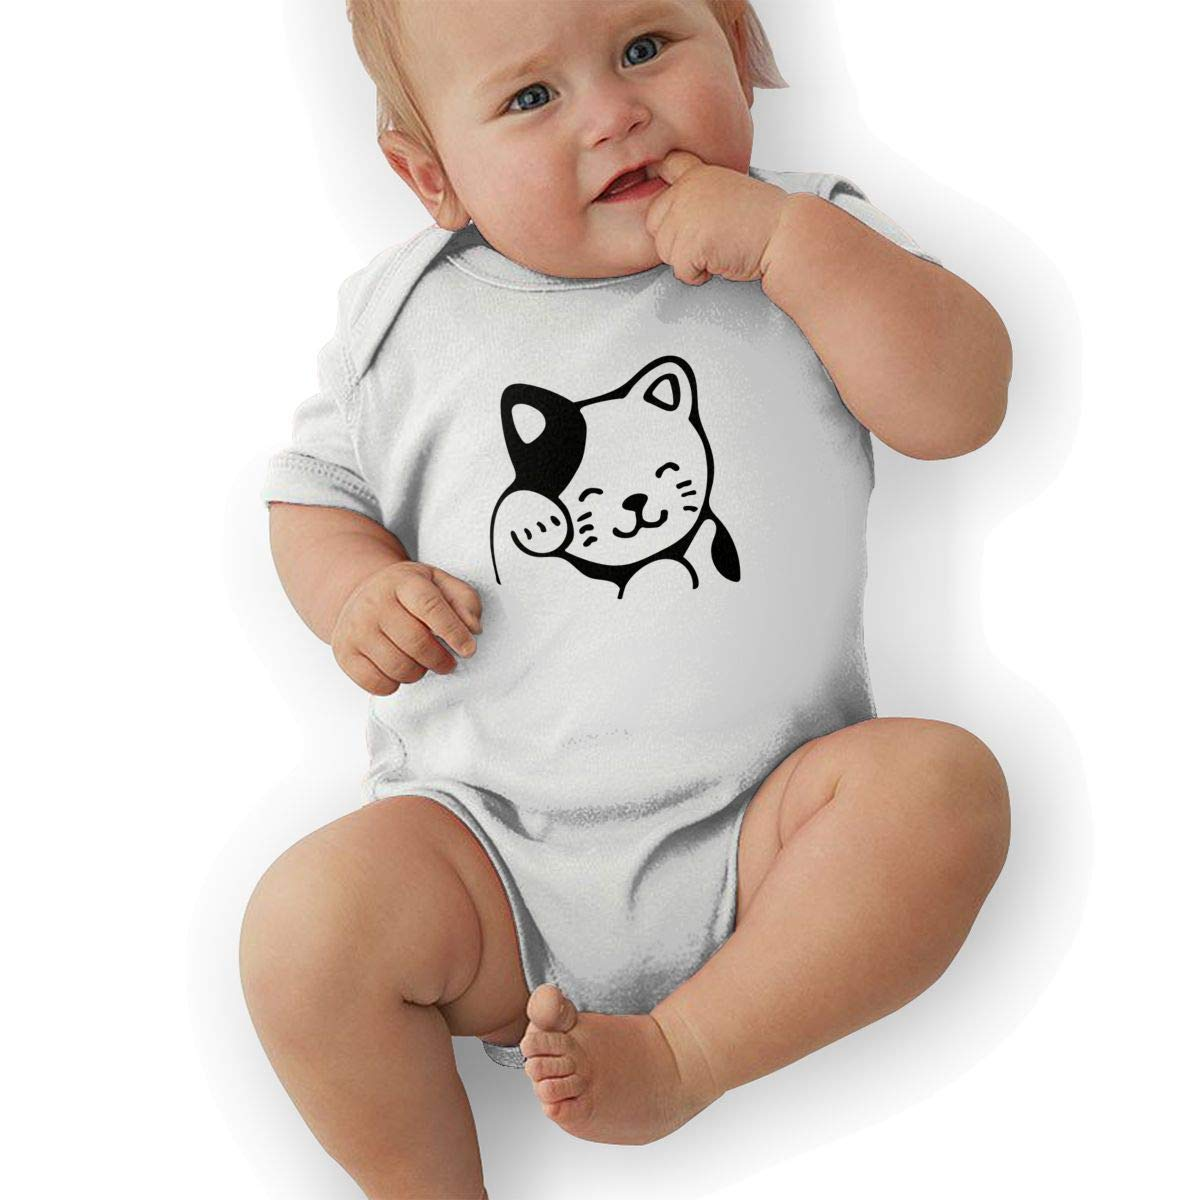 Lucky Cat Baby Onesies Toddler Baby Girl//Boy Unisex Clothes Romper Jumpsuit Bodysuit One Piece